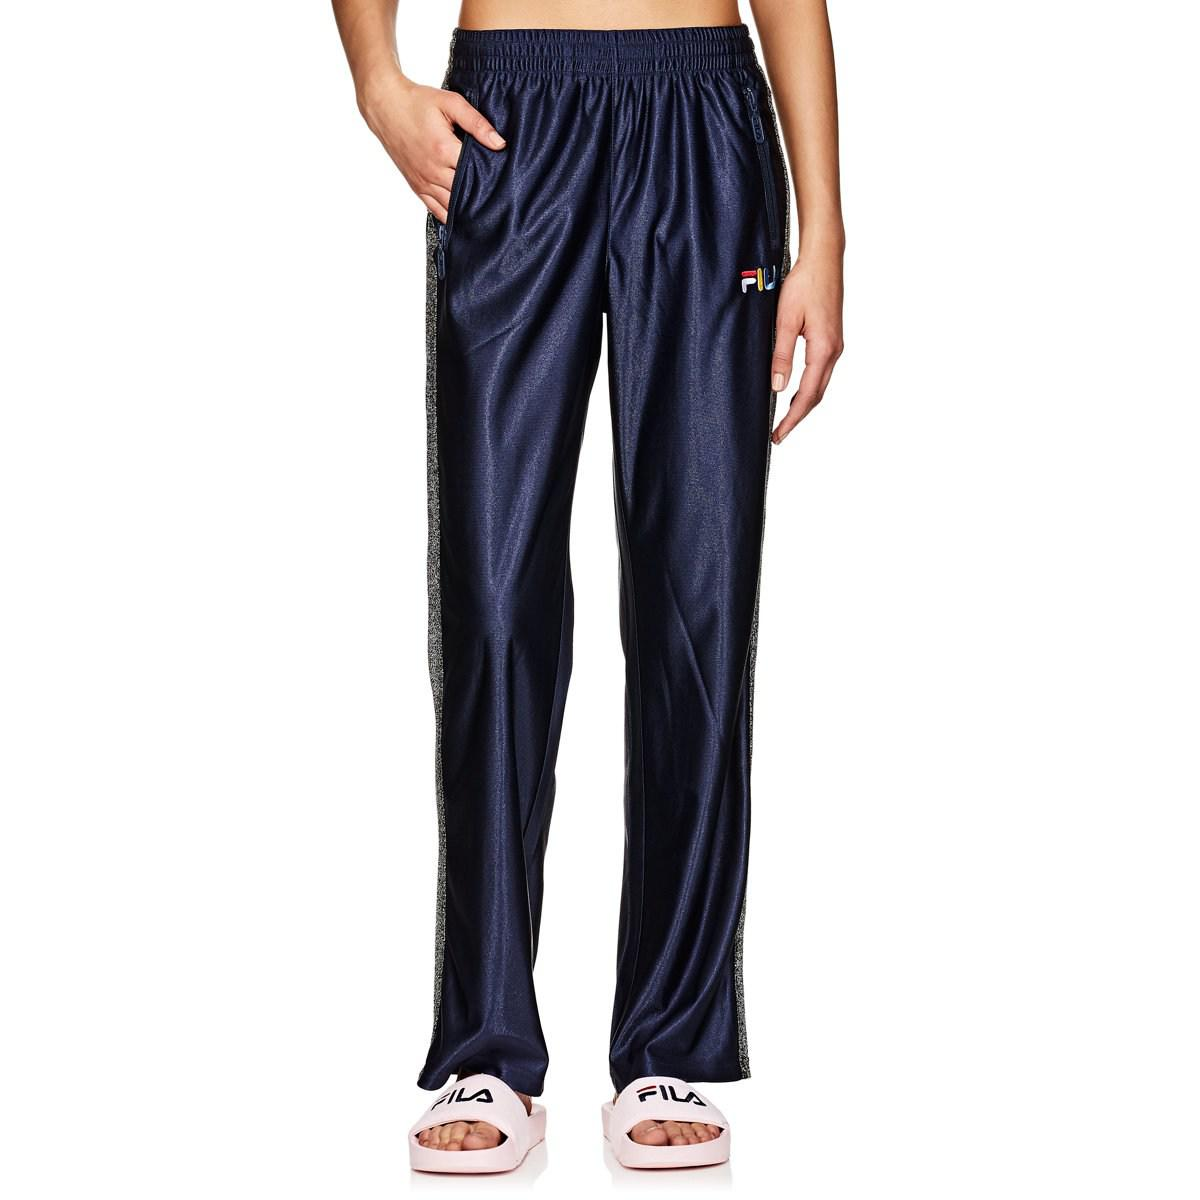 1c79398643cf8 Fila Logo Sparkly-striped Pants in Blue - Lyst